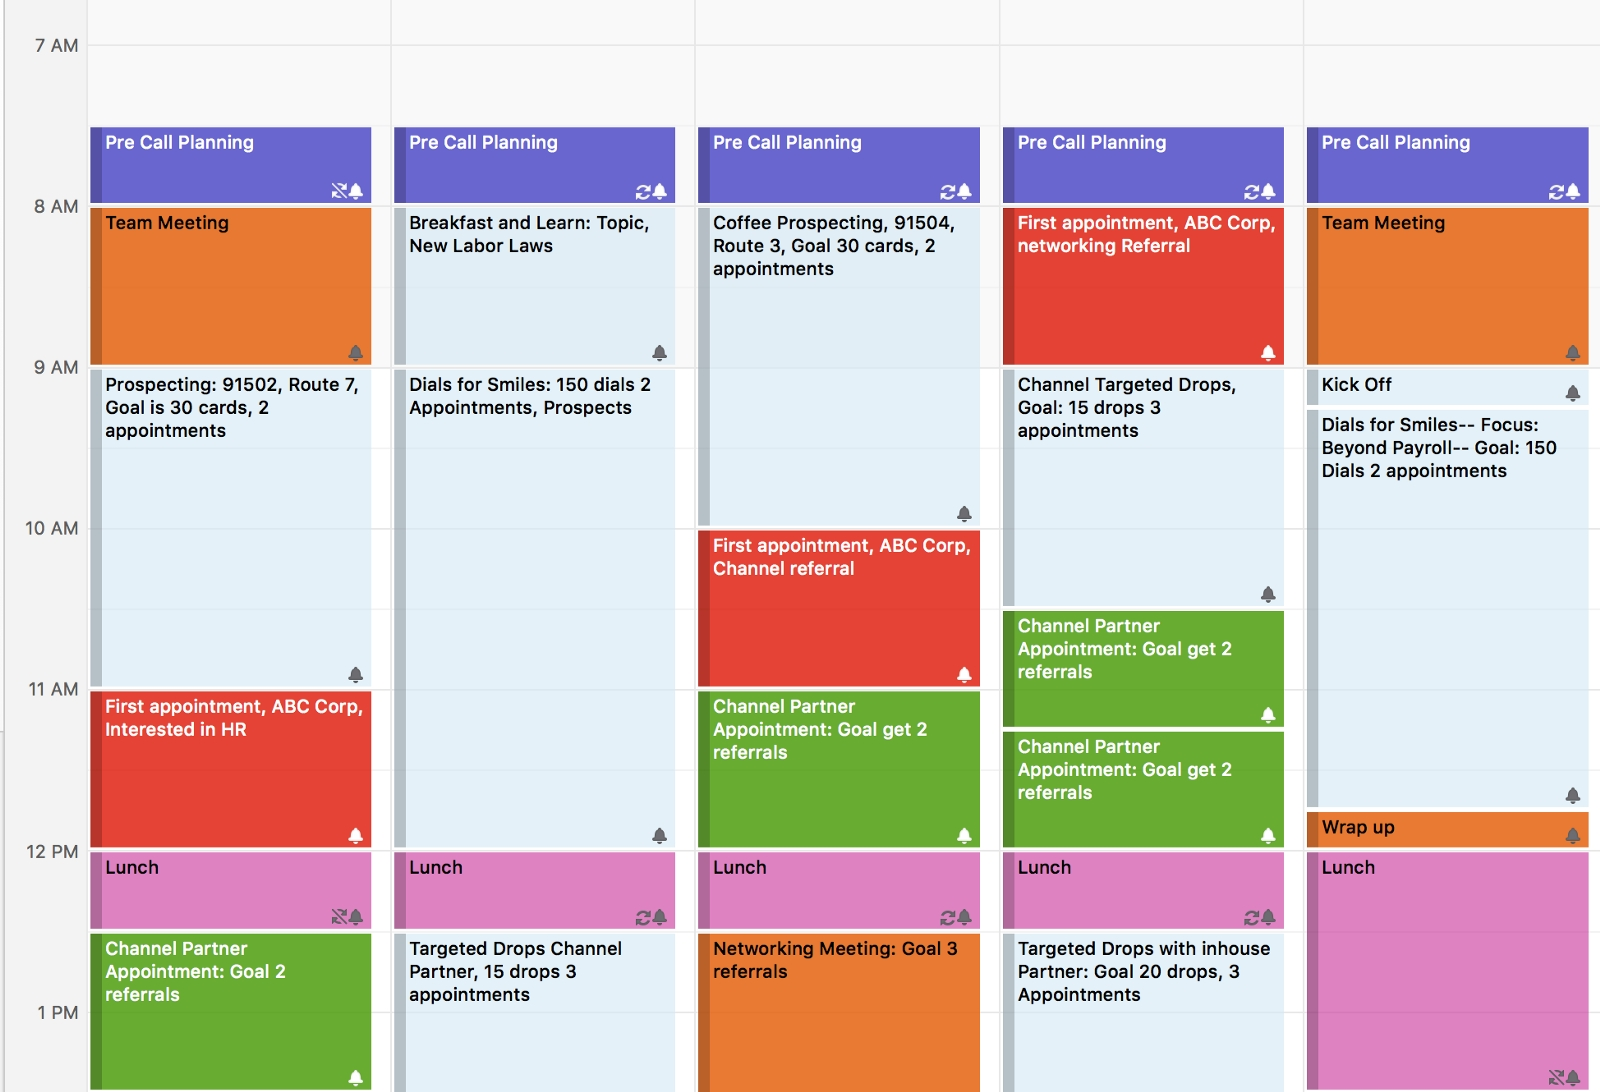 Creating A Sales Calendar, Pre-Call Planning, And Goals